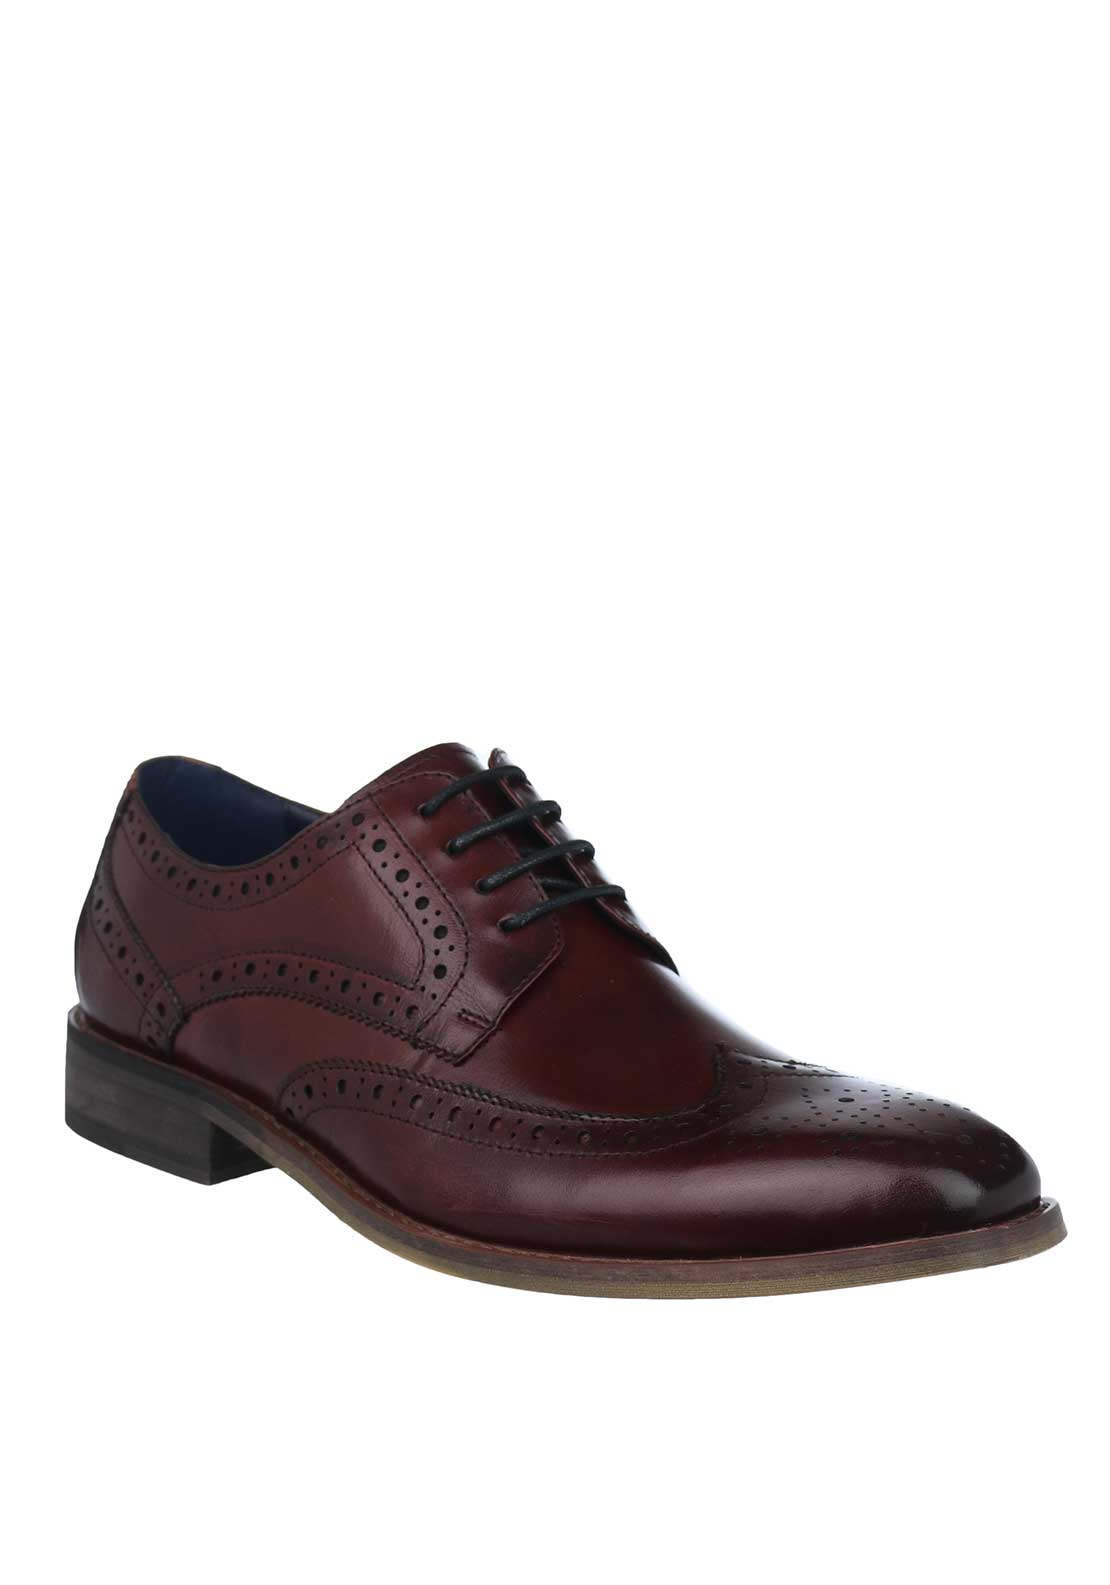 Escape Mens Gatti Lace Up Faux Leather Brogue Shoe, Wine